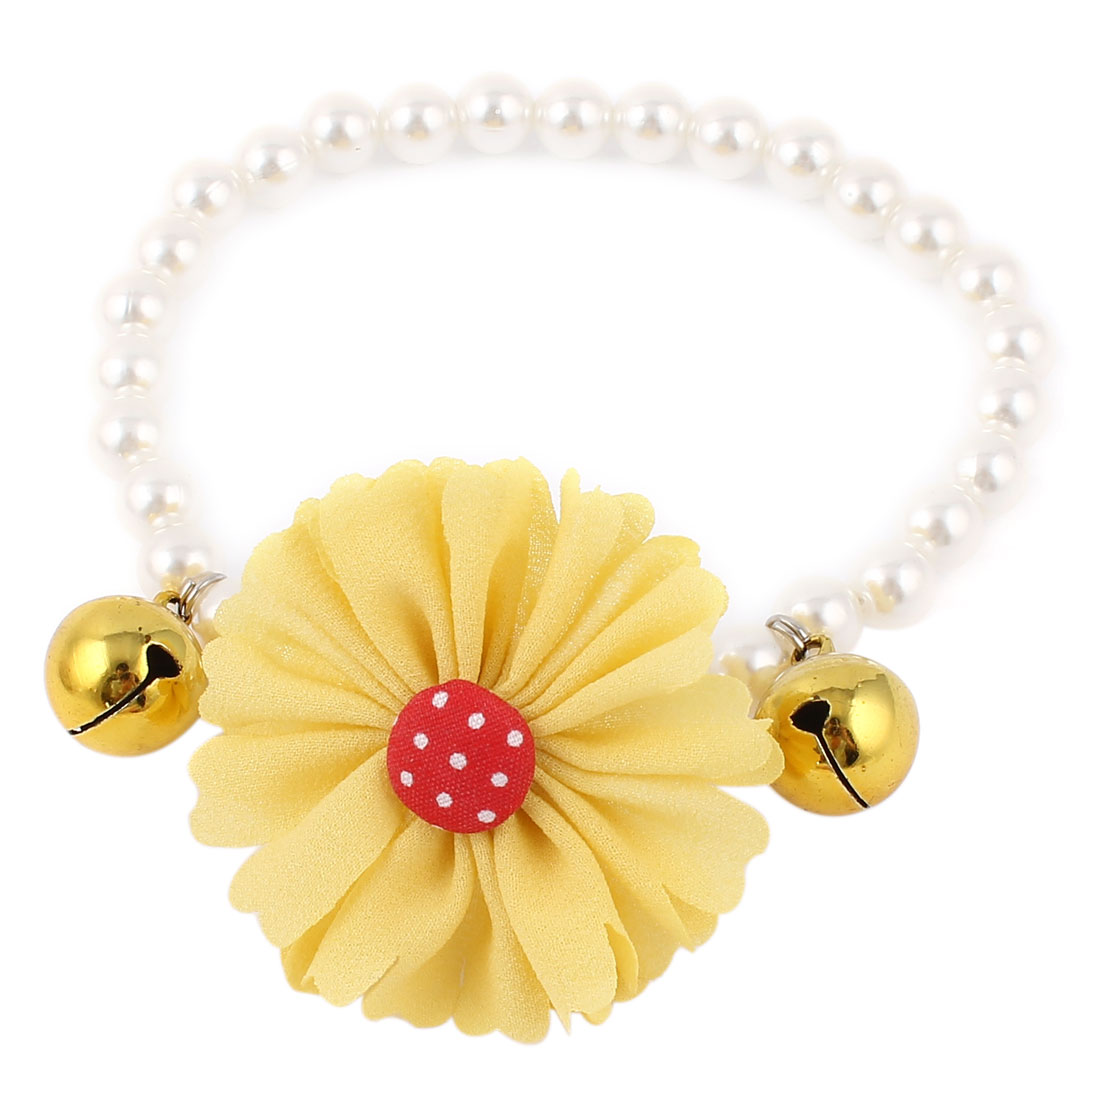 Metal Bell Pendant Flower Detail Pet Dog Plastic Beads Pearls Collar Necklace White Yellow M